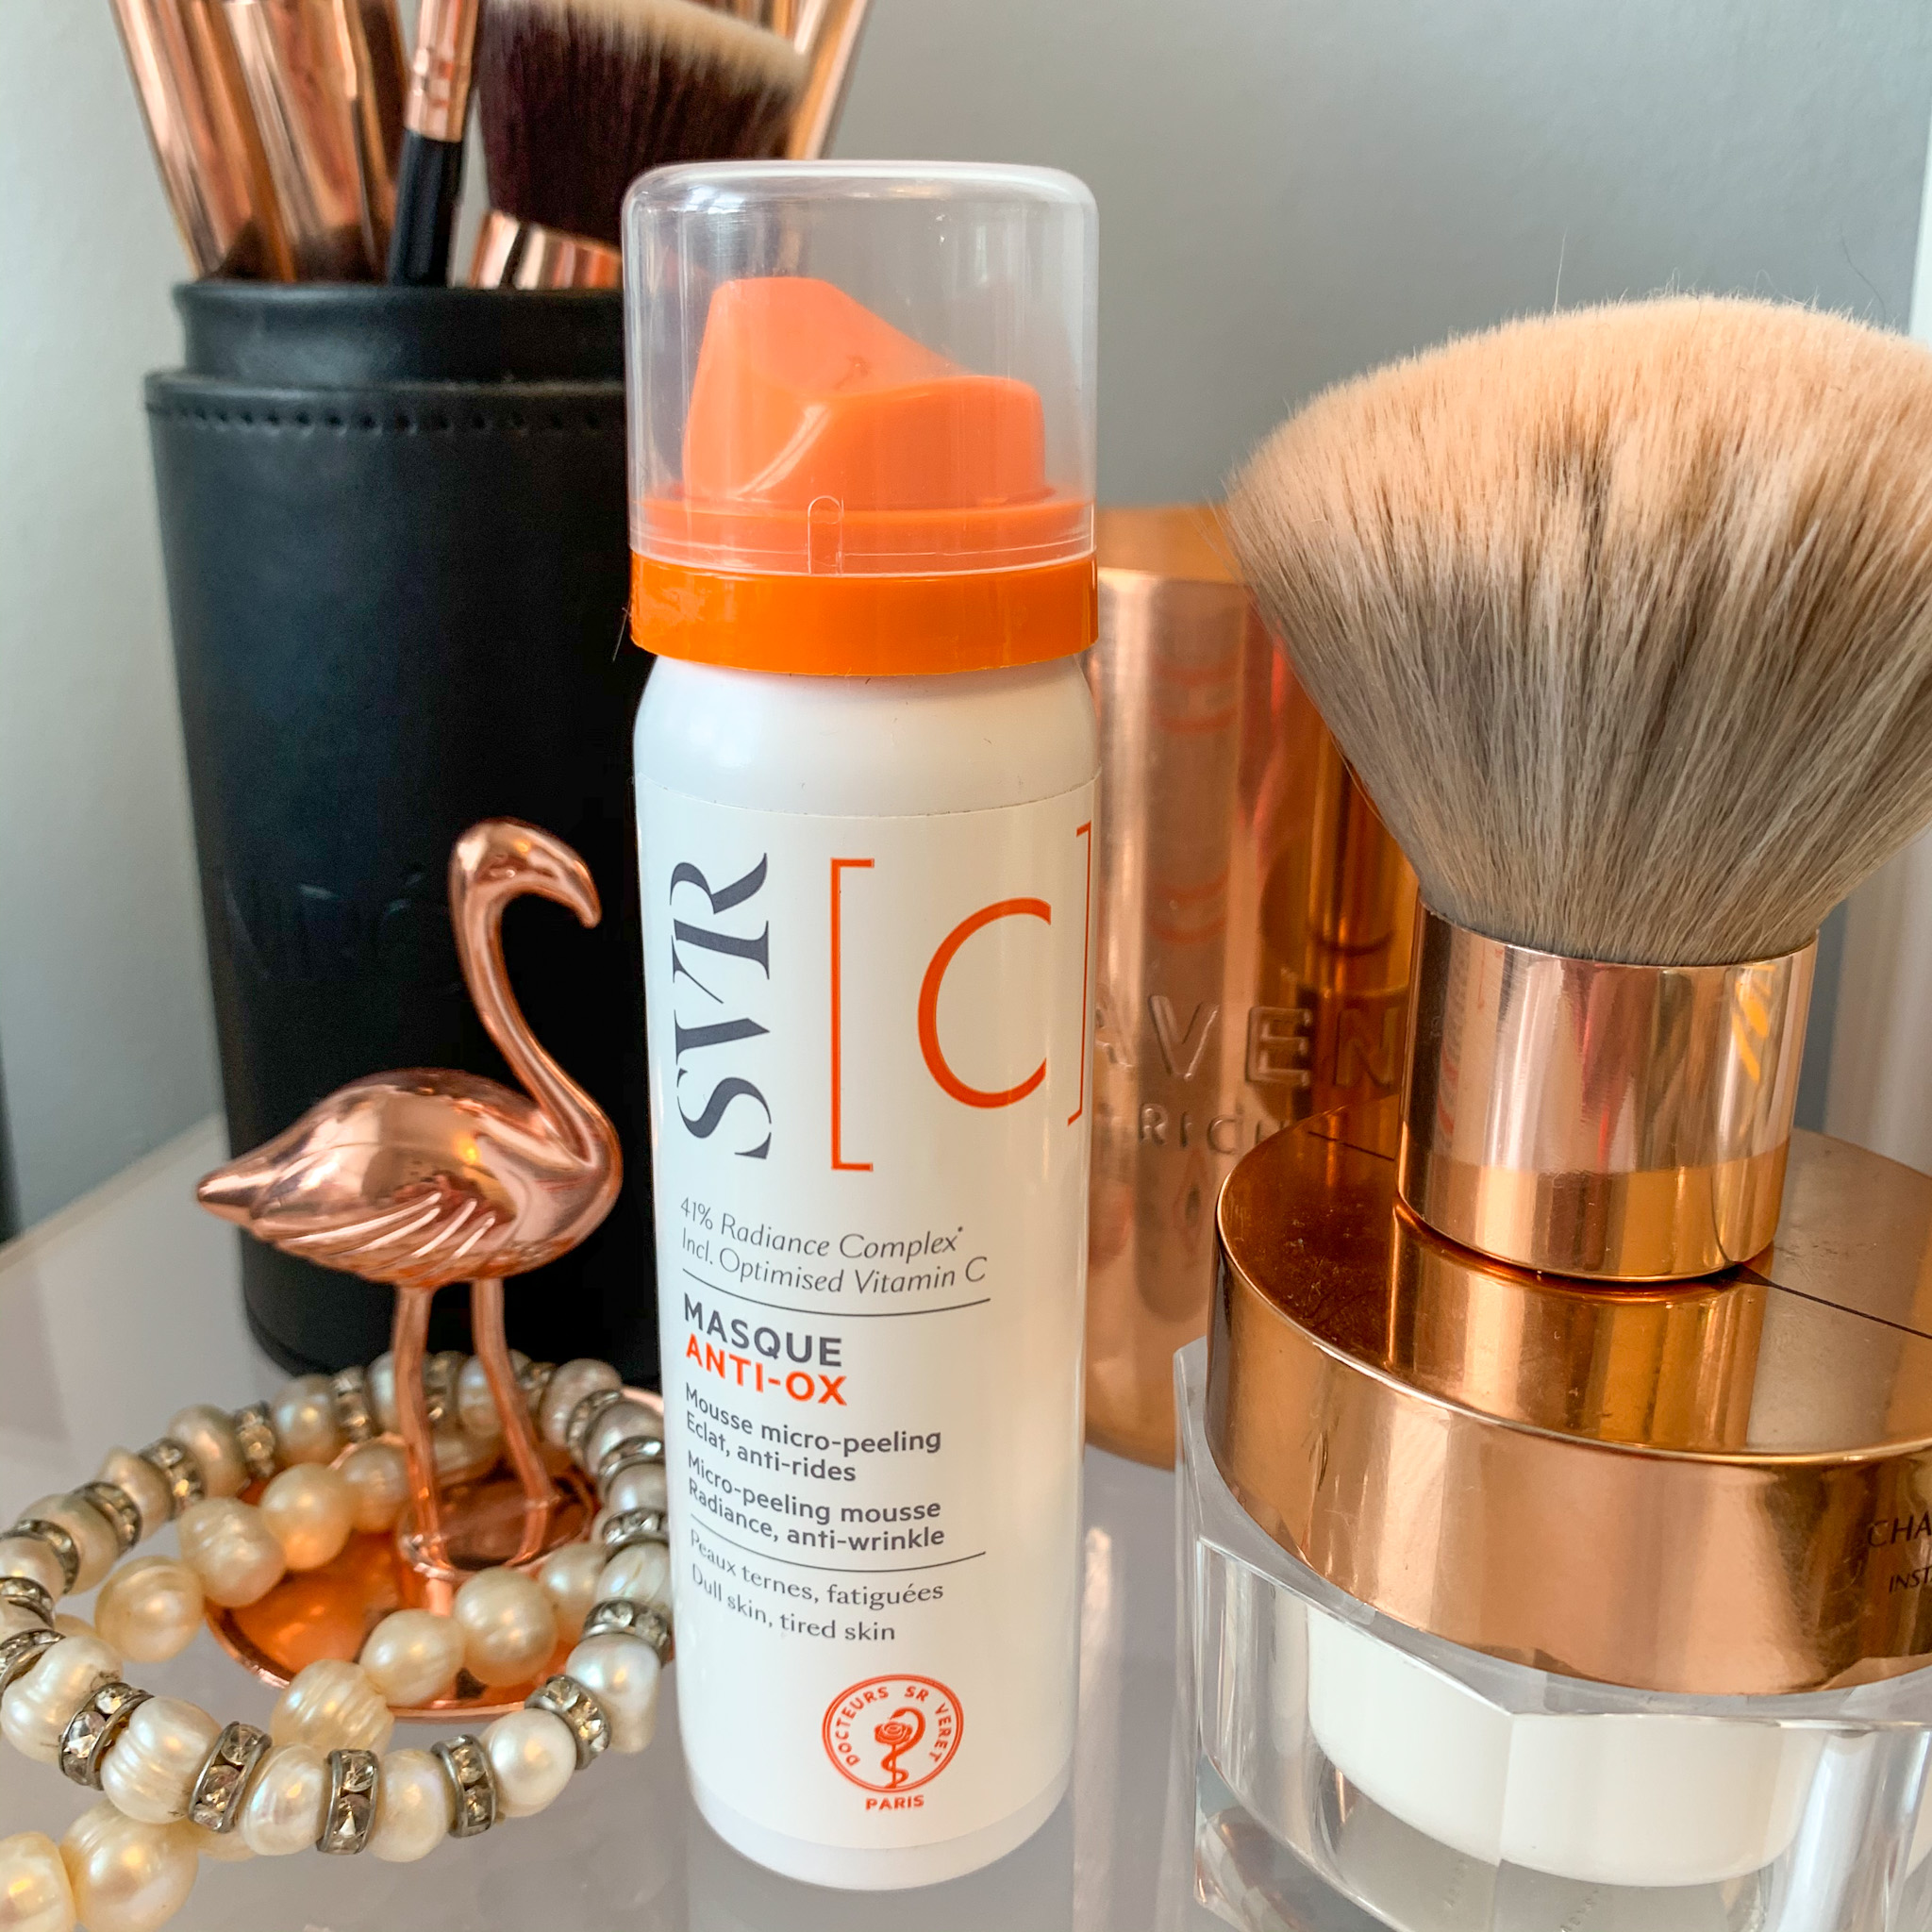 Review of this wonderful micro peeling mousse mask